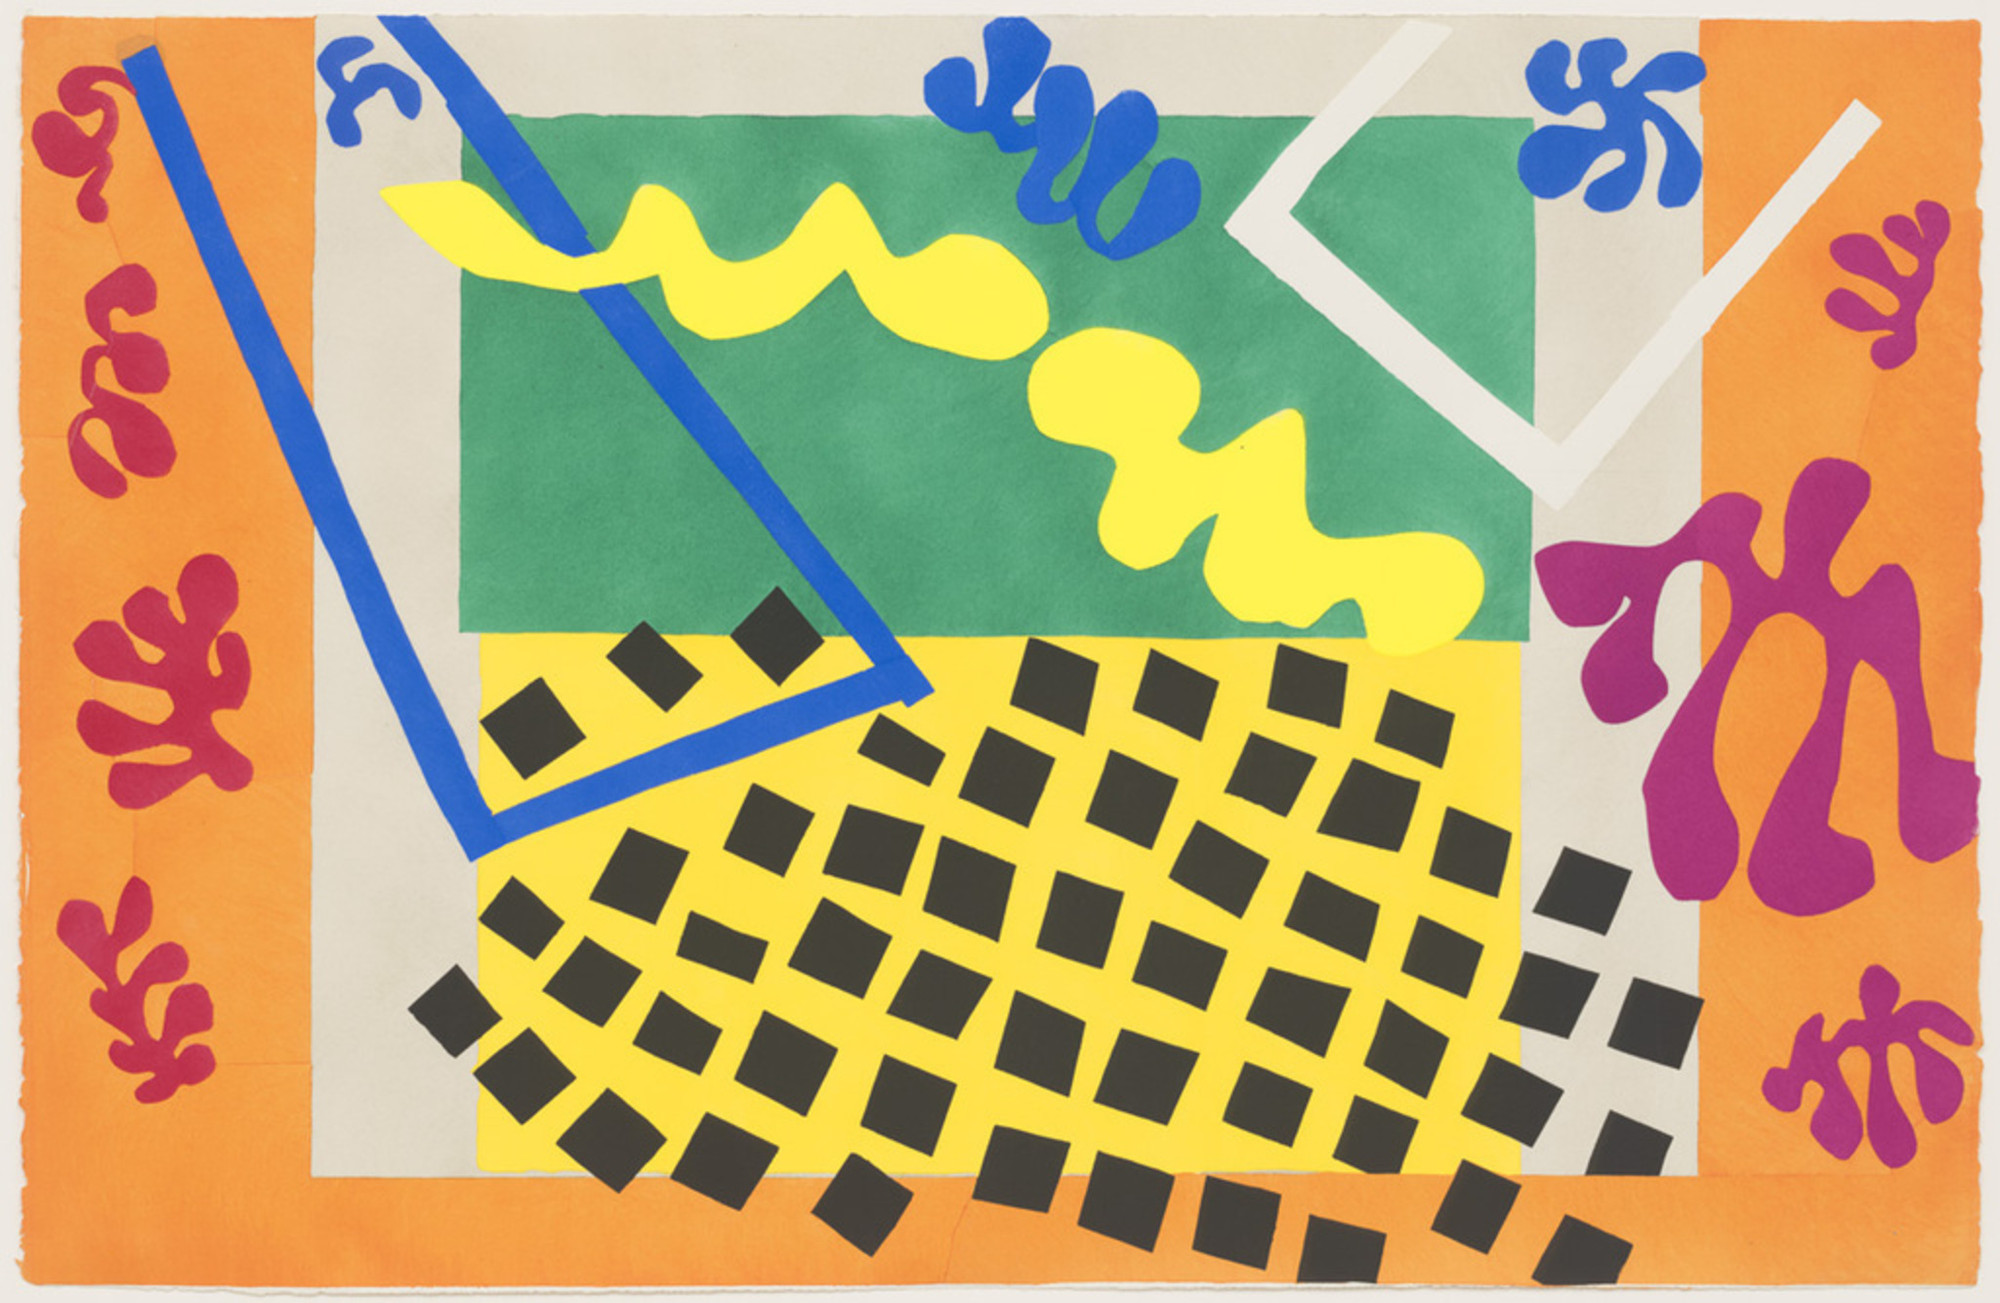 "Henri Matisse (French, 1869–1954). The Codomas (Les Codomas) from Jazz. 1947. One from a portfolio of twenty pochoirs, composition (irreg.) and sheet: 16 5/8 × 25 5/8"" (42.2 × 65.1 cm). Gift of the artist. © 2014 Succession H. Matisse / Artists Rights Society (ARS), New York"